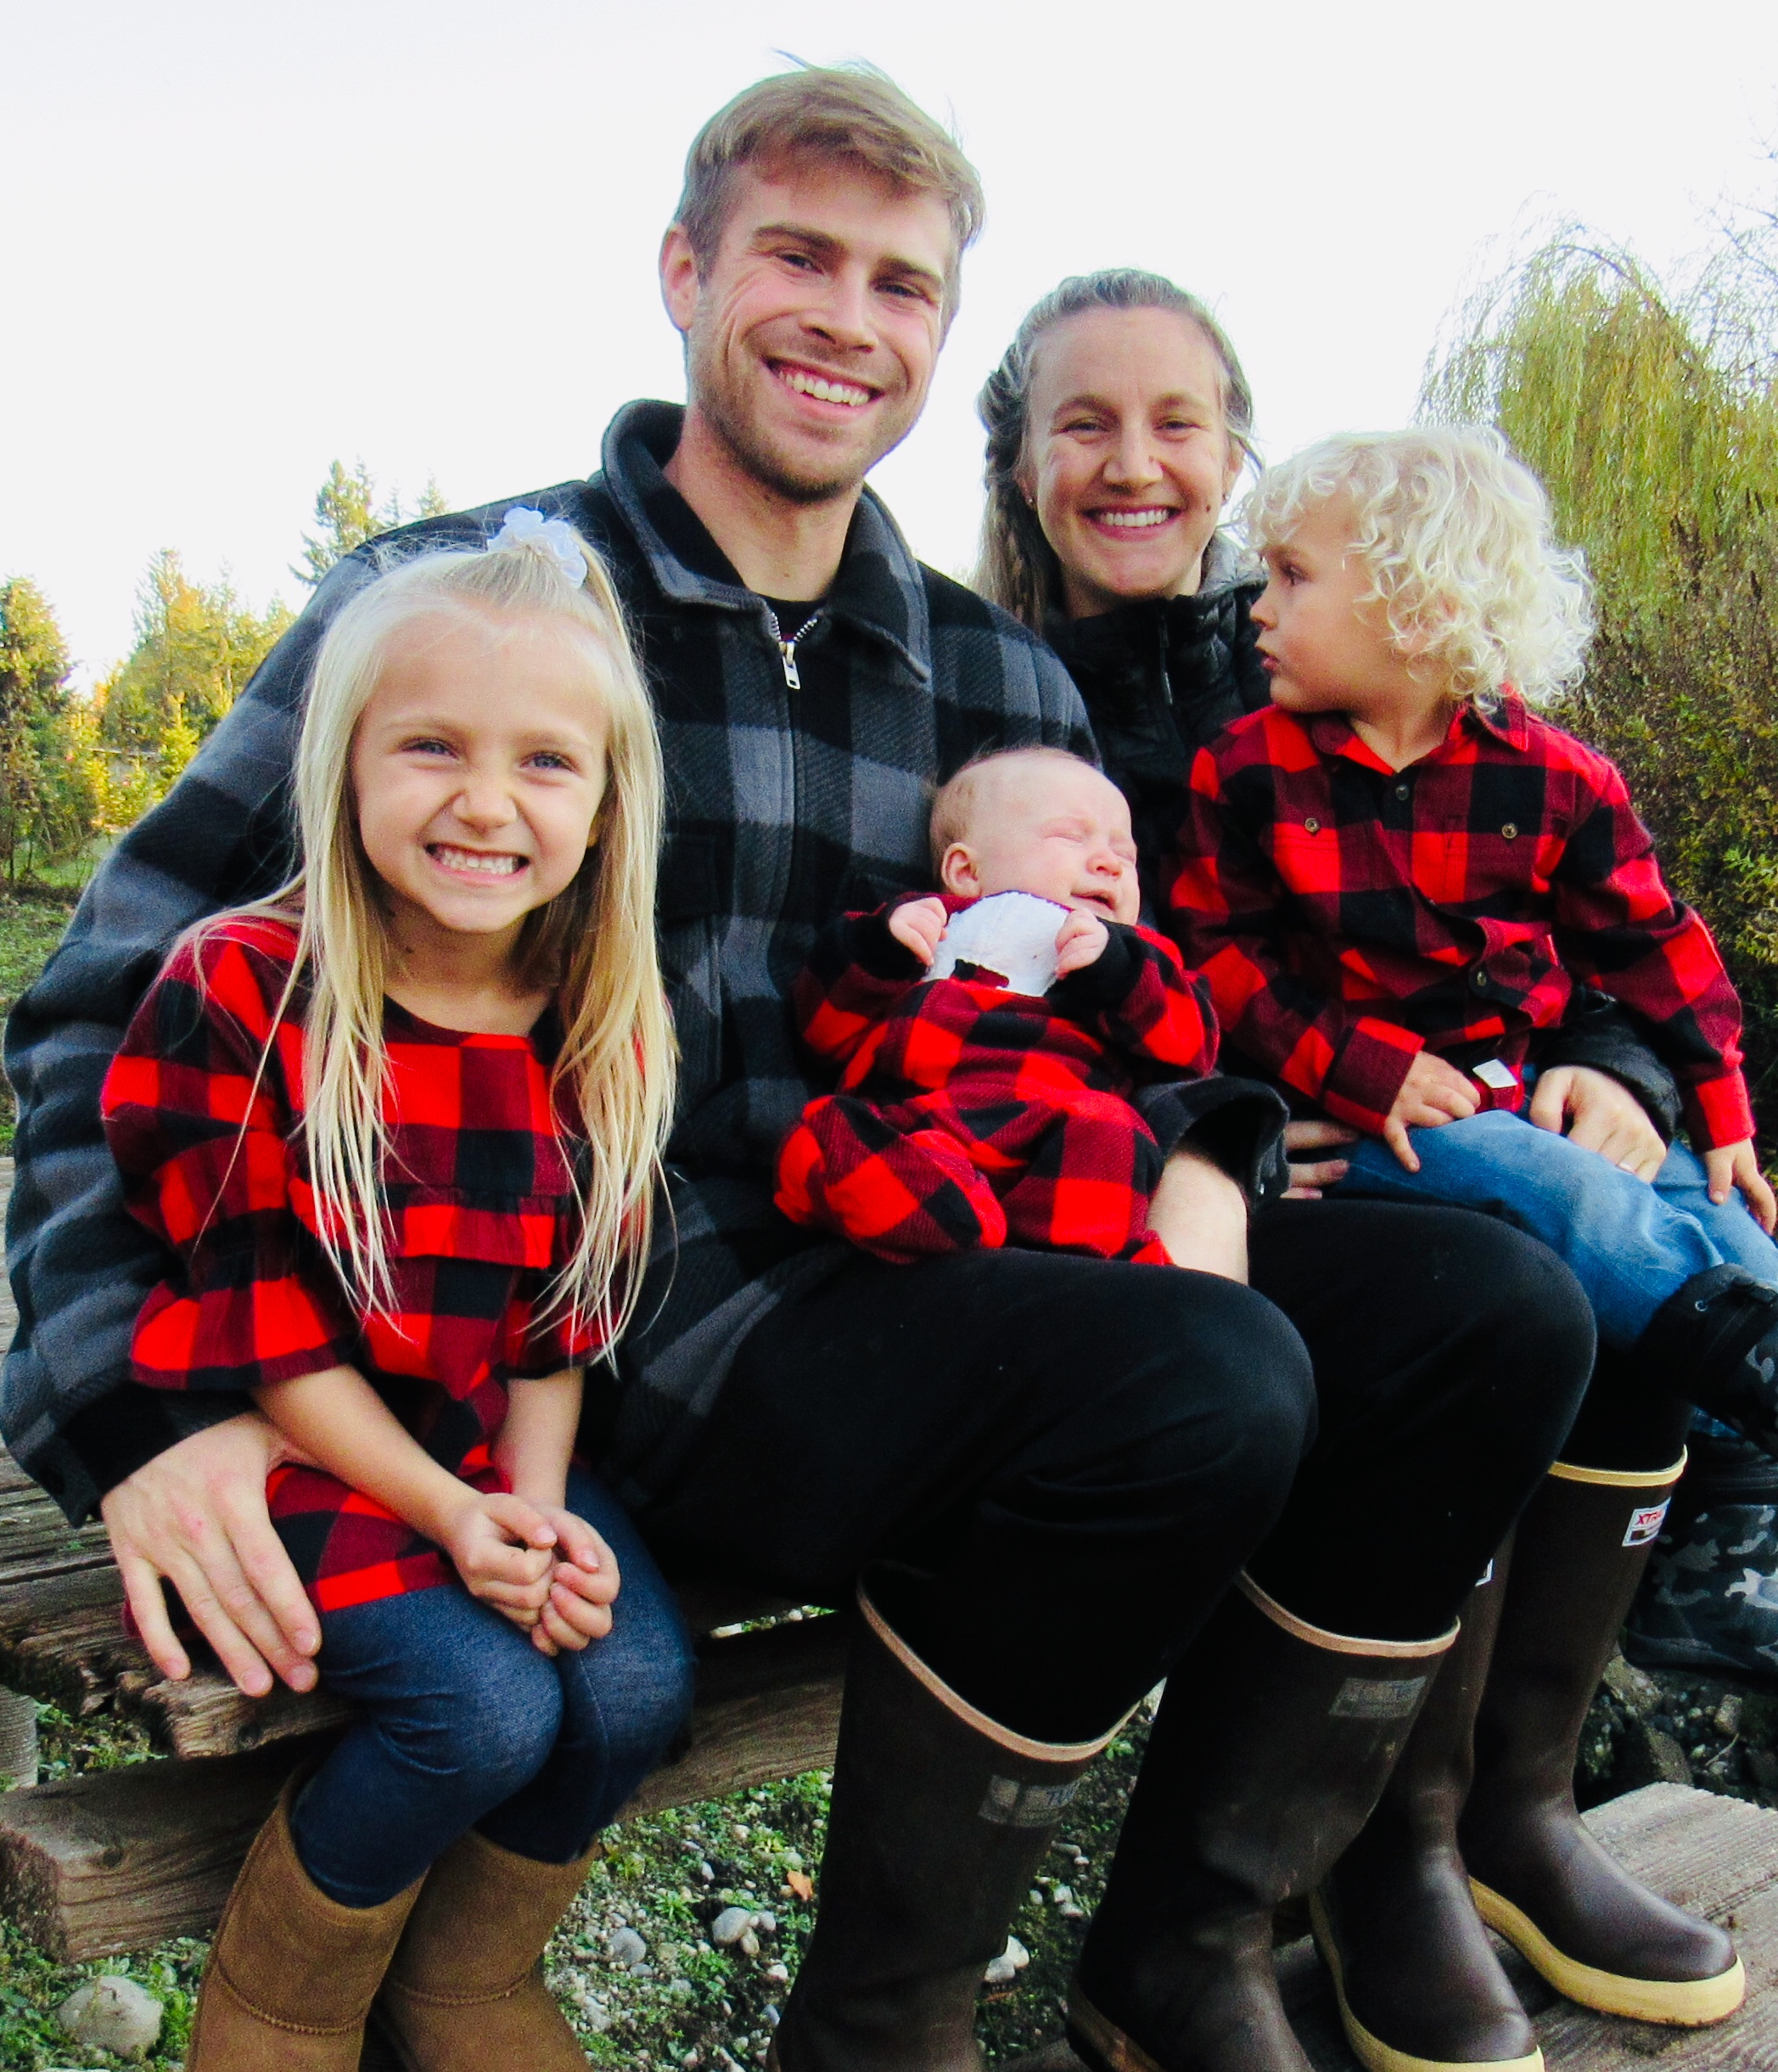 my family - In 2011 I married a stunningly beautiful woman who was way out of my league. Together we have three gorgeous children, enjoy adventures, and make our home in the Pacific Northwest.